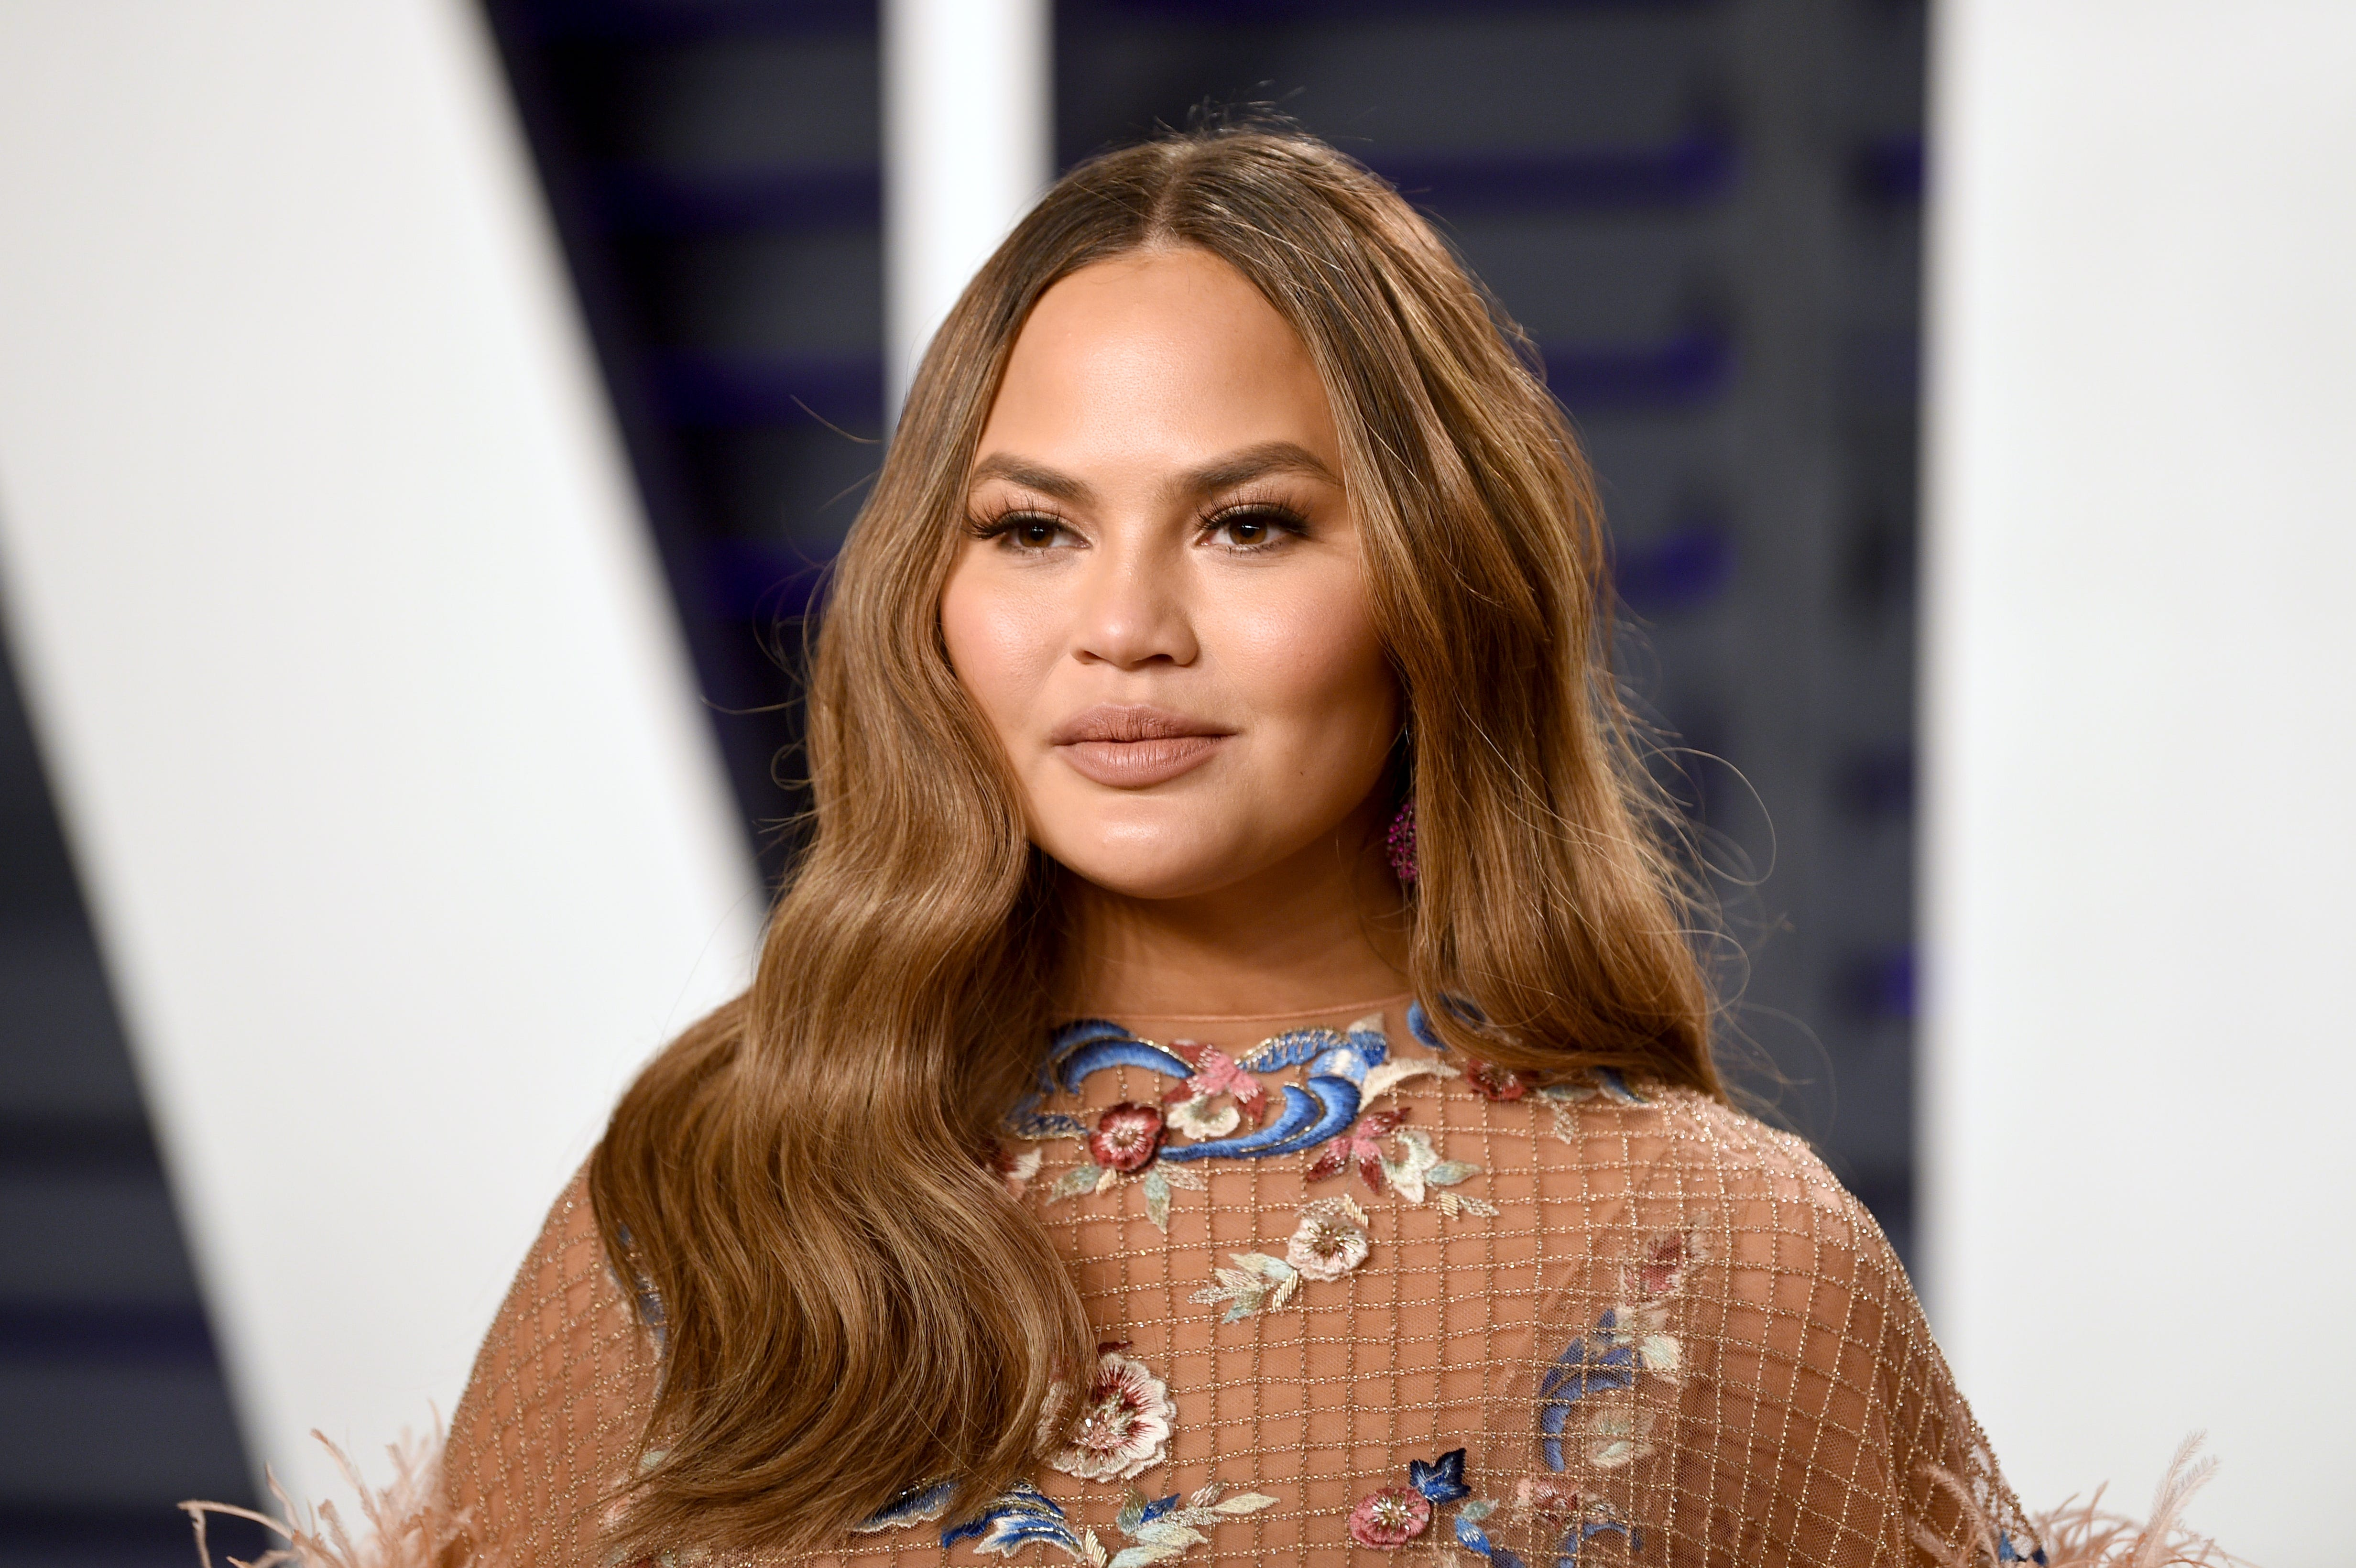 Chrissy Teigen's latest post about her pregnancy loss has an important message about grief